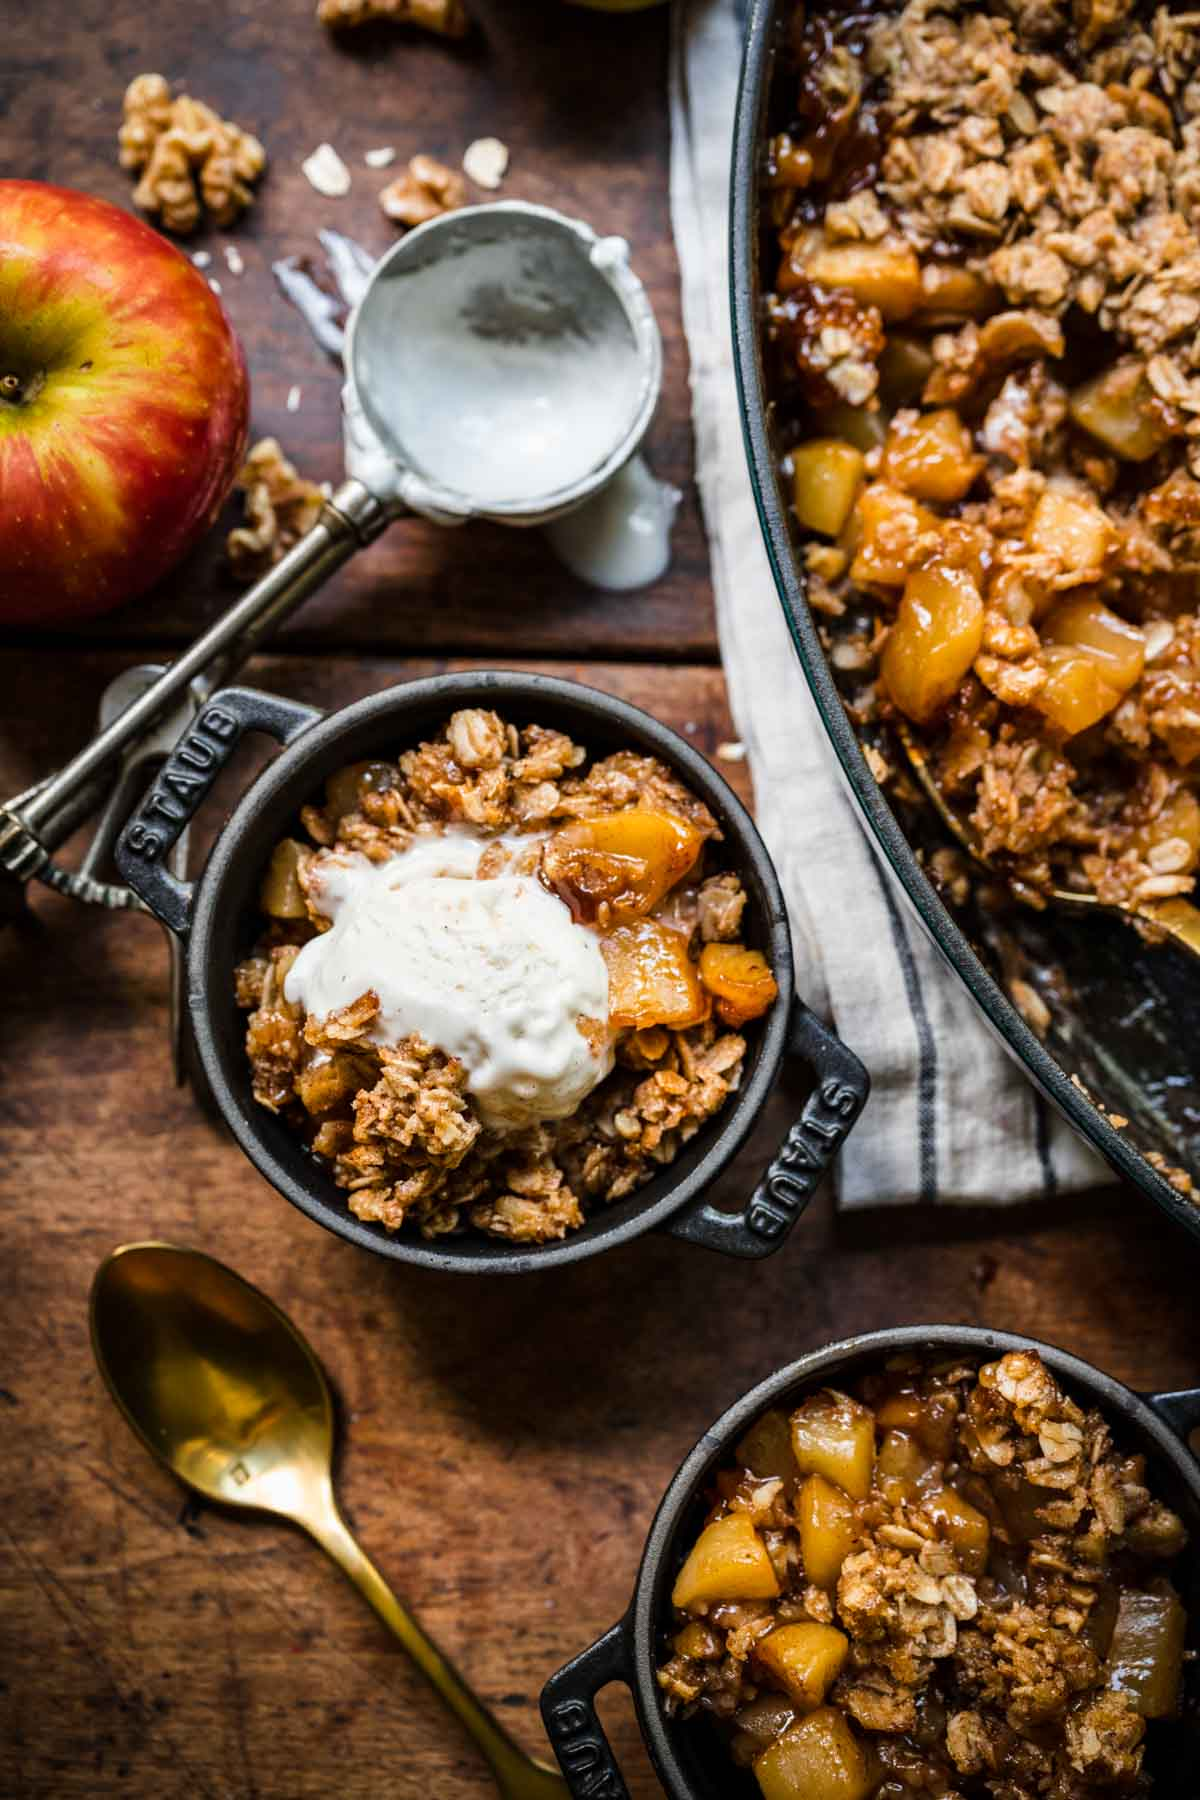 overhead view of vegan apple crisp served in mini cocottes with vanilla ice cream on top on wood table.